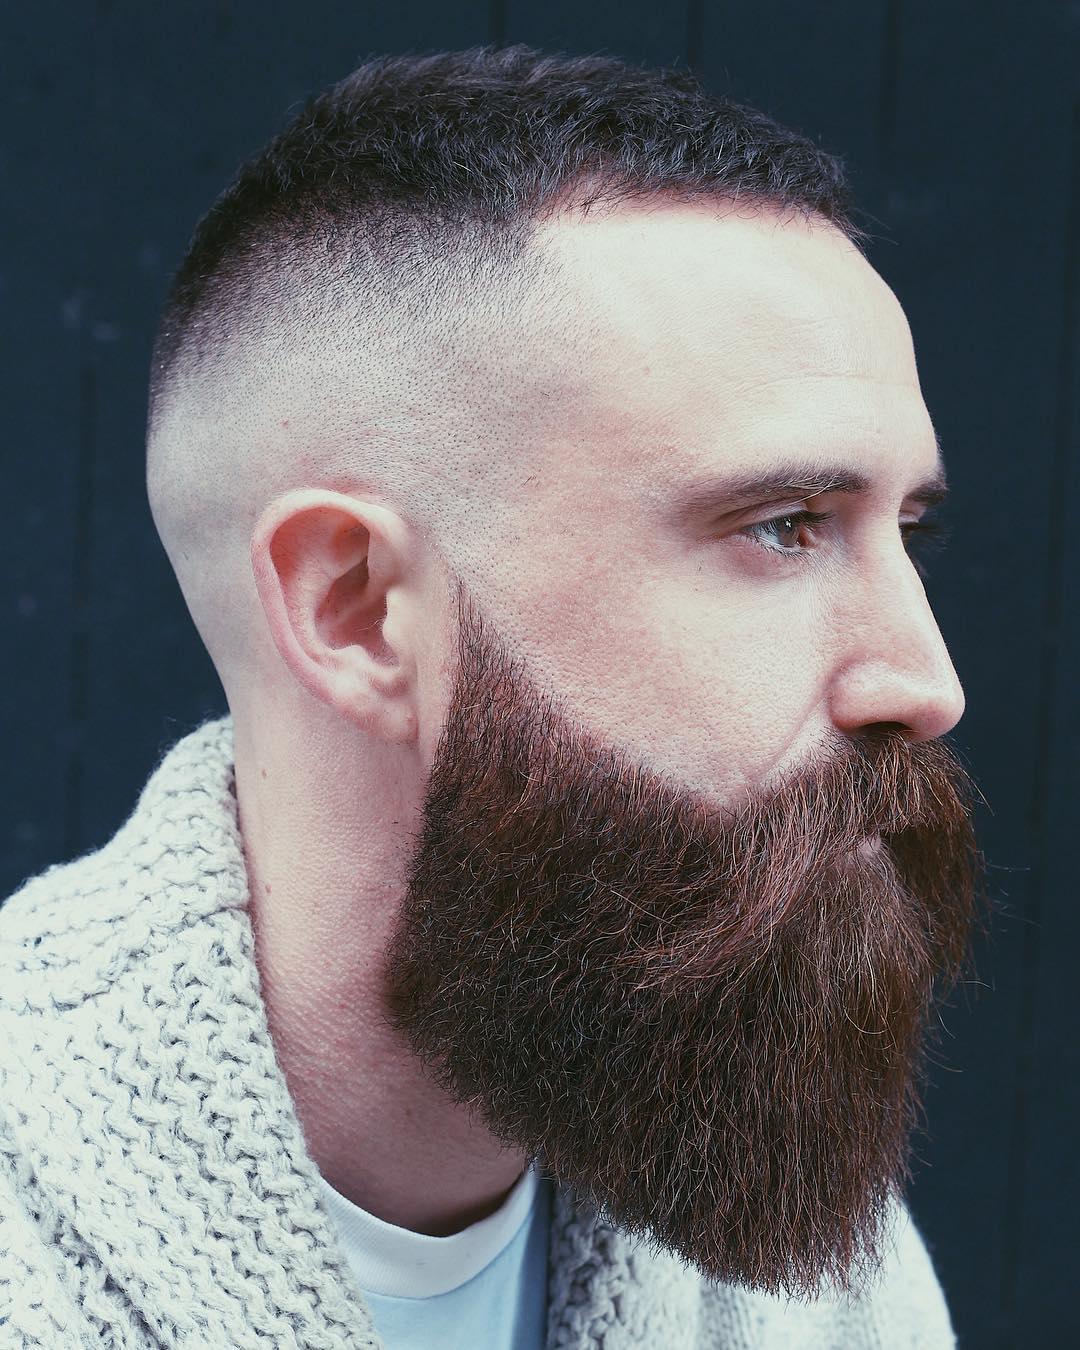 Lush Beard with Thick Volume Compliments the Skin Fade